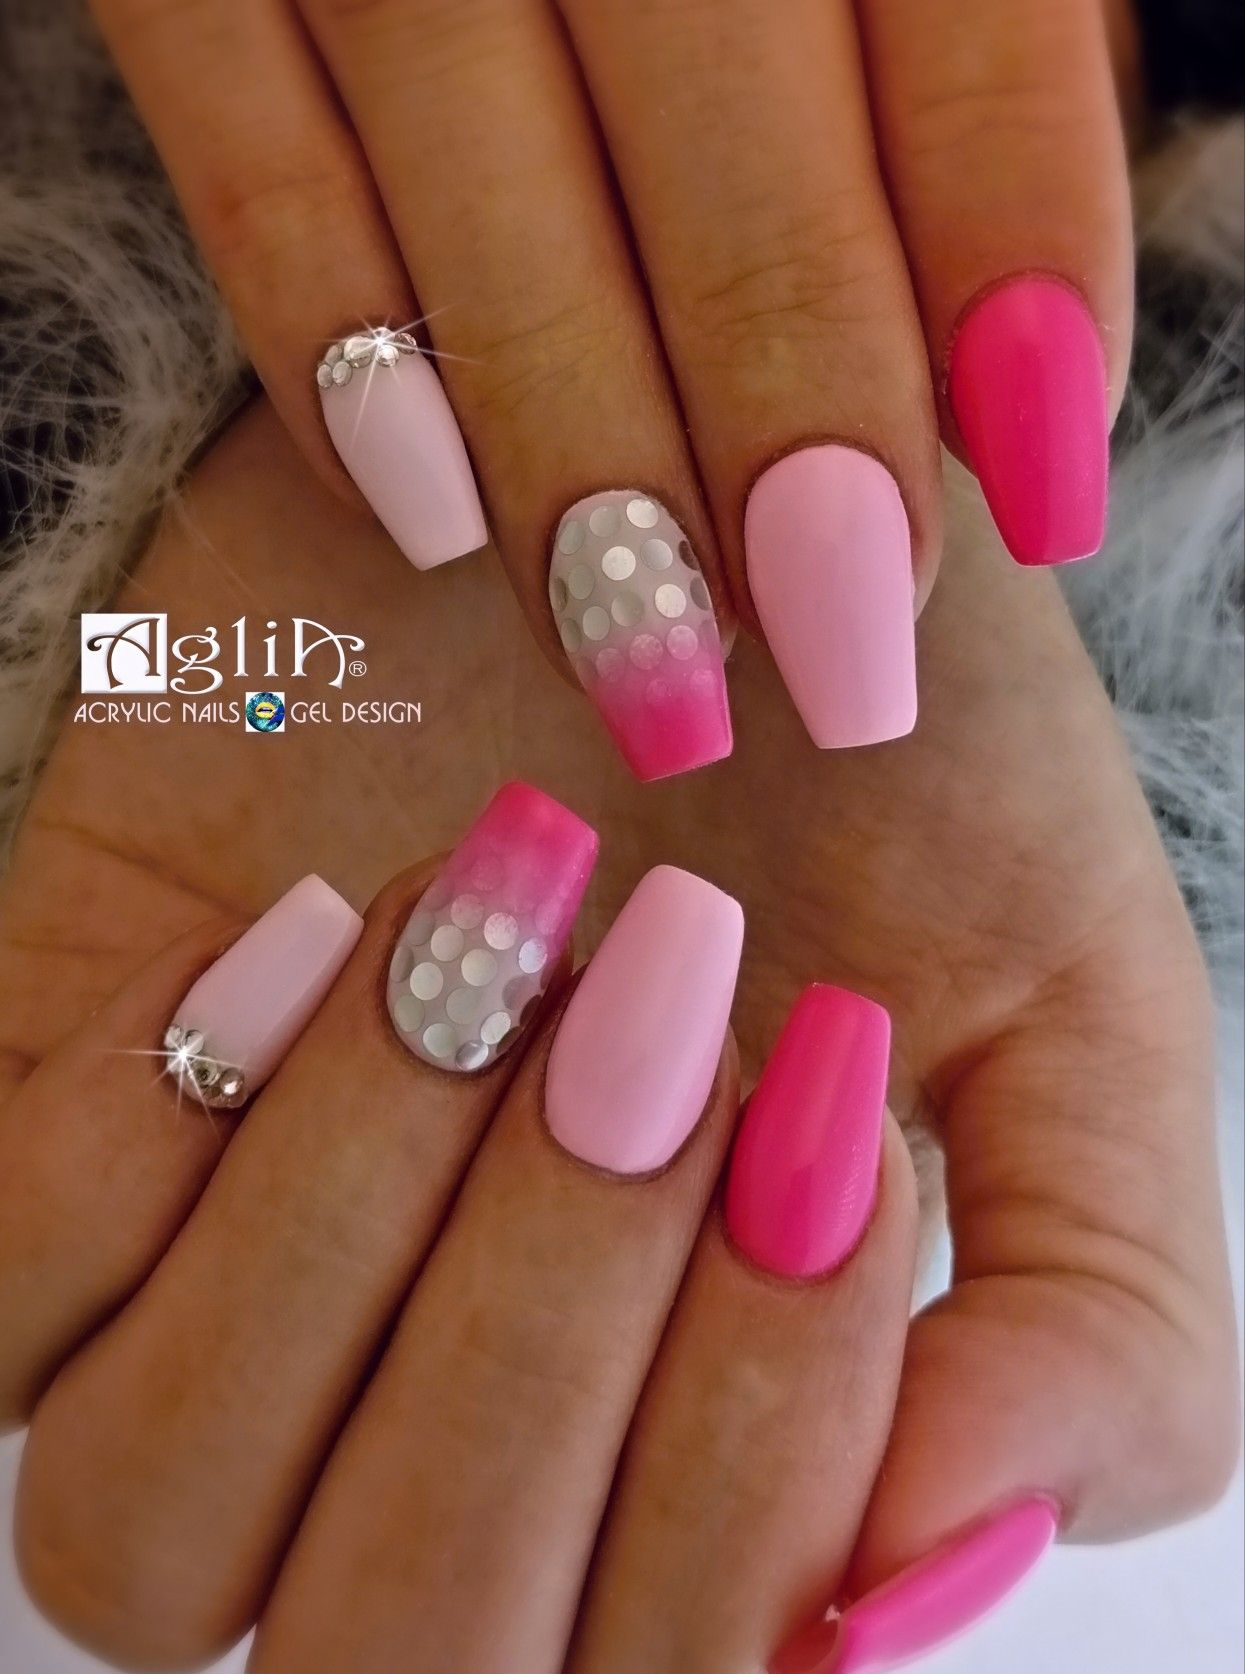 Acrylic Nails Gel Design Nail Art Nehty Ruzova